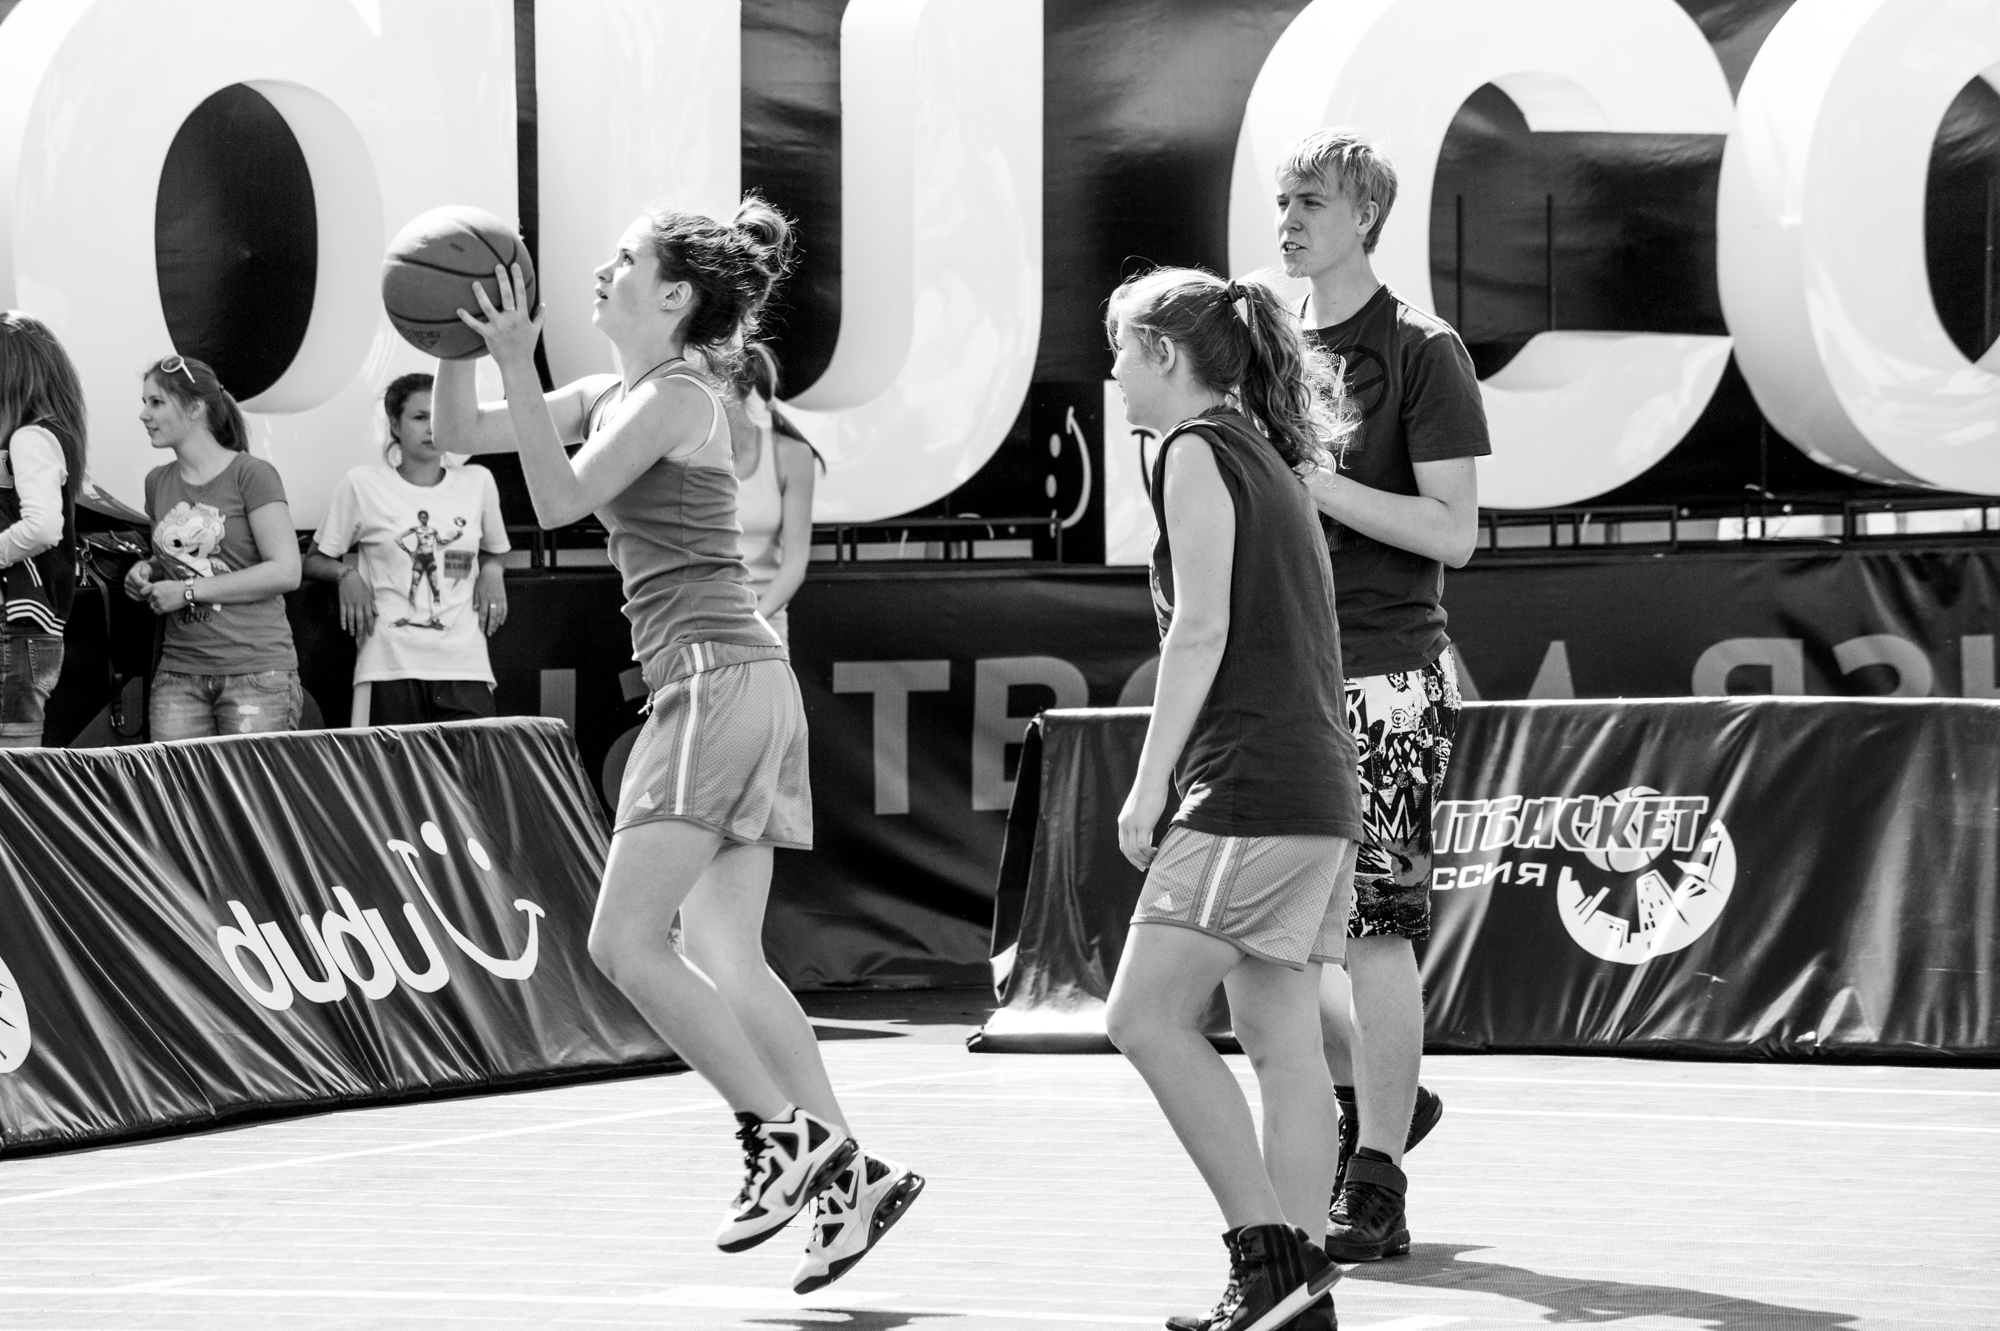 Girls play streetball